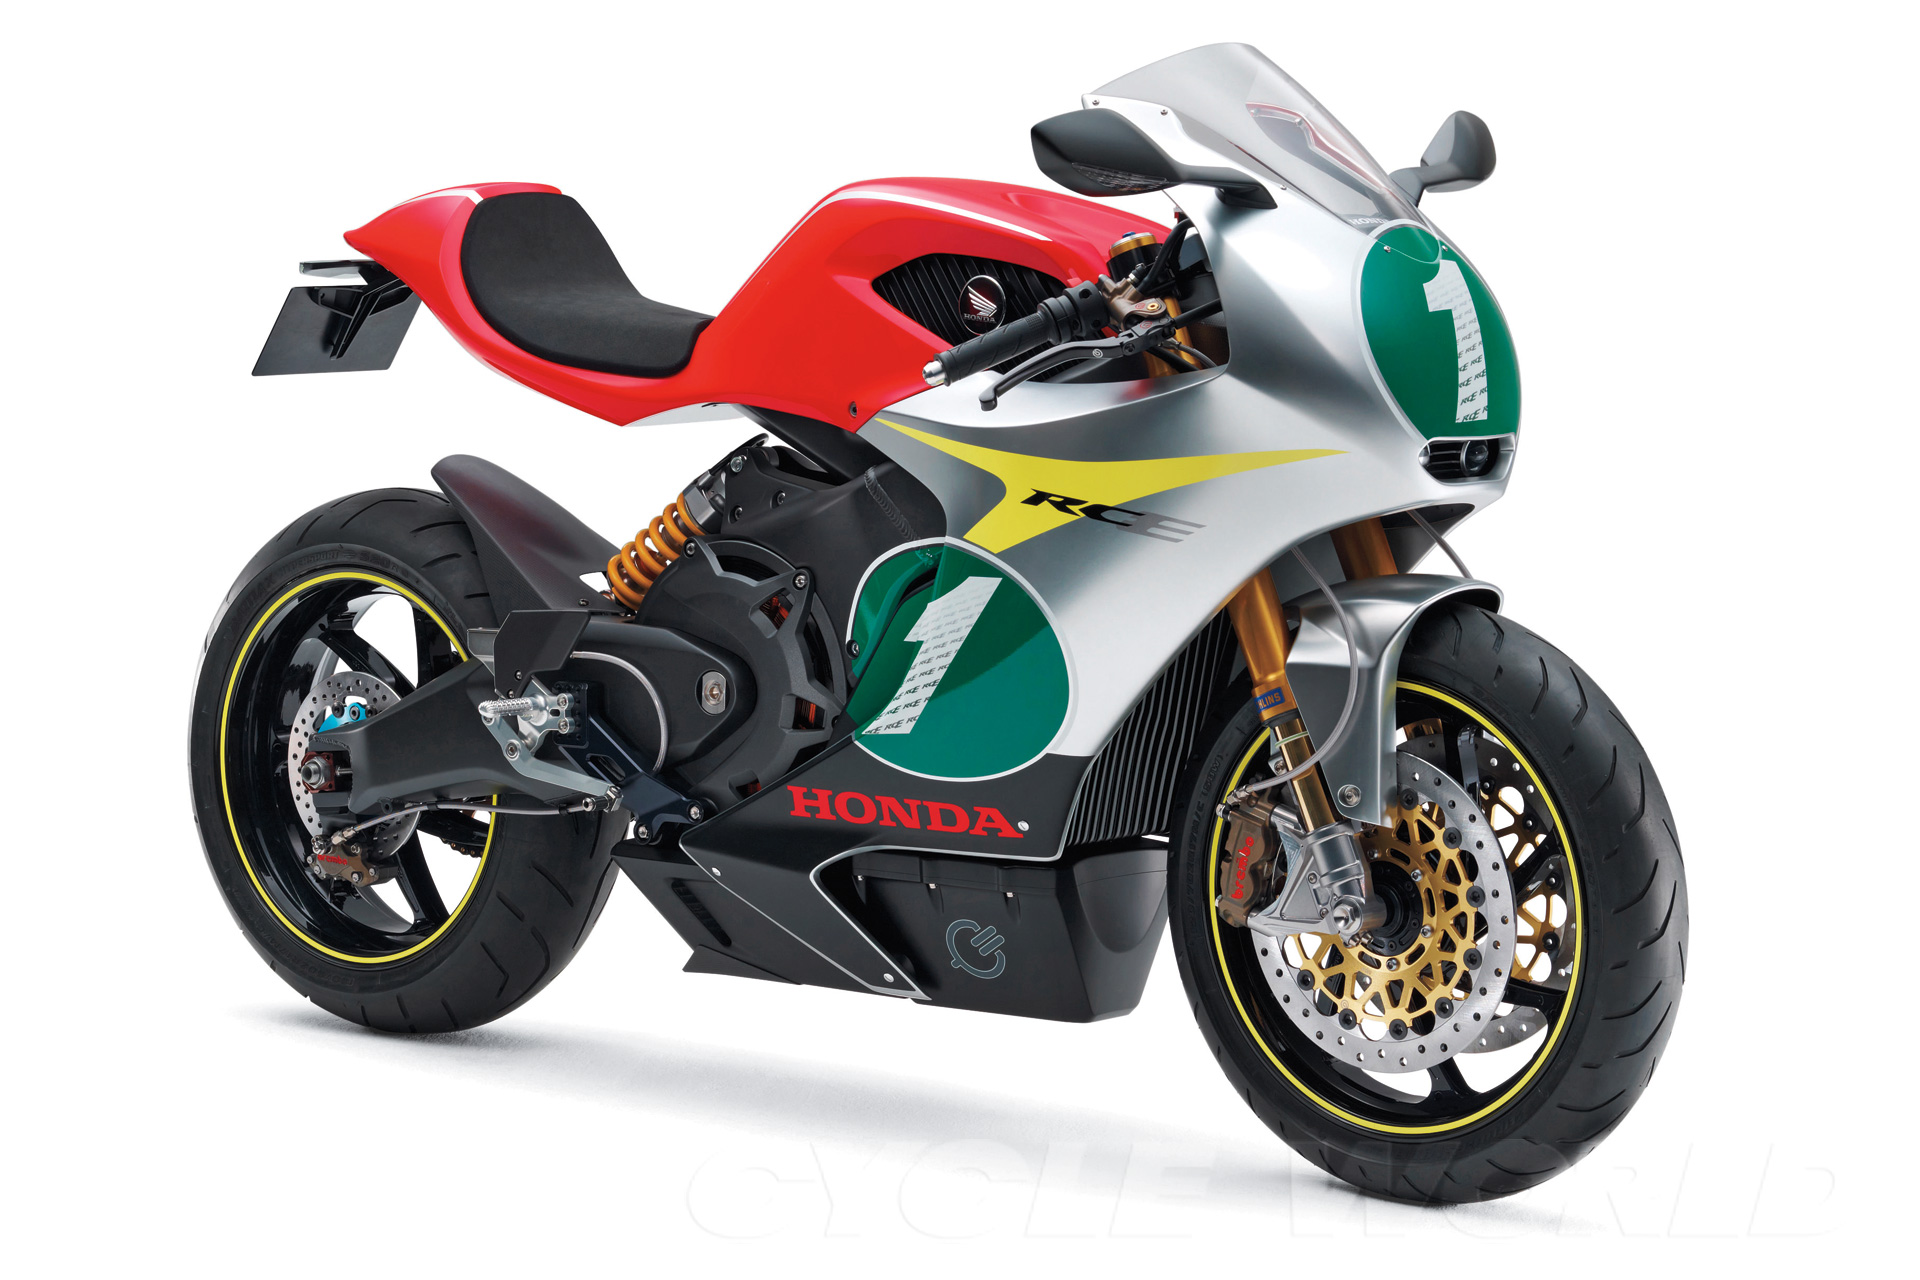 Honda Rc E Motorcycles Photo 30679041 Fanpop